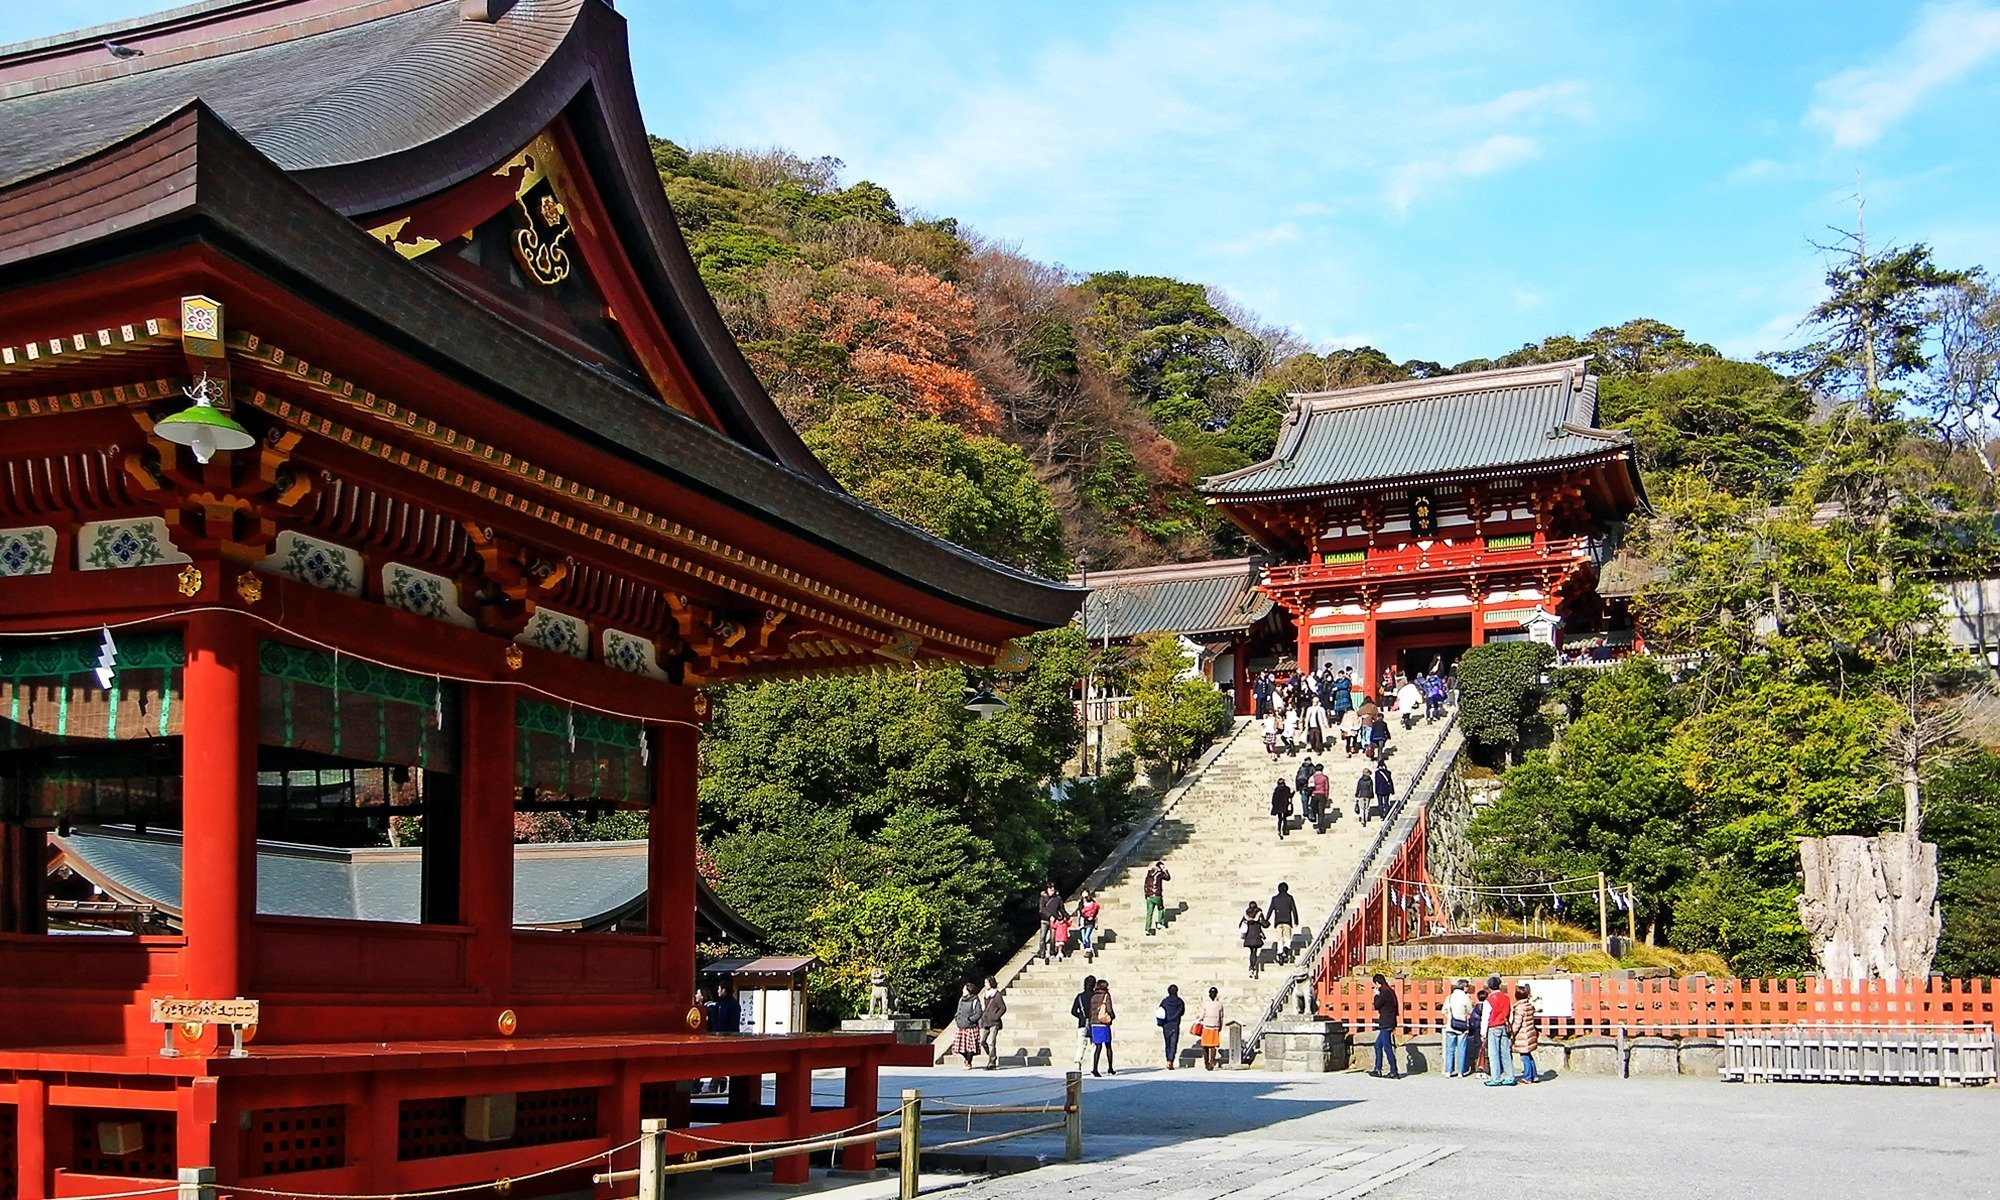 Take a day trip from Tokyo to Enoshima and Kamakura, where you can eat shirasu (raw baby fish), take a stroll around the beautiful parks, see the Great Buddha or Daibutsu, ride a monorail, and enjoy views of the sea.